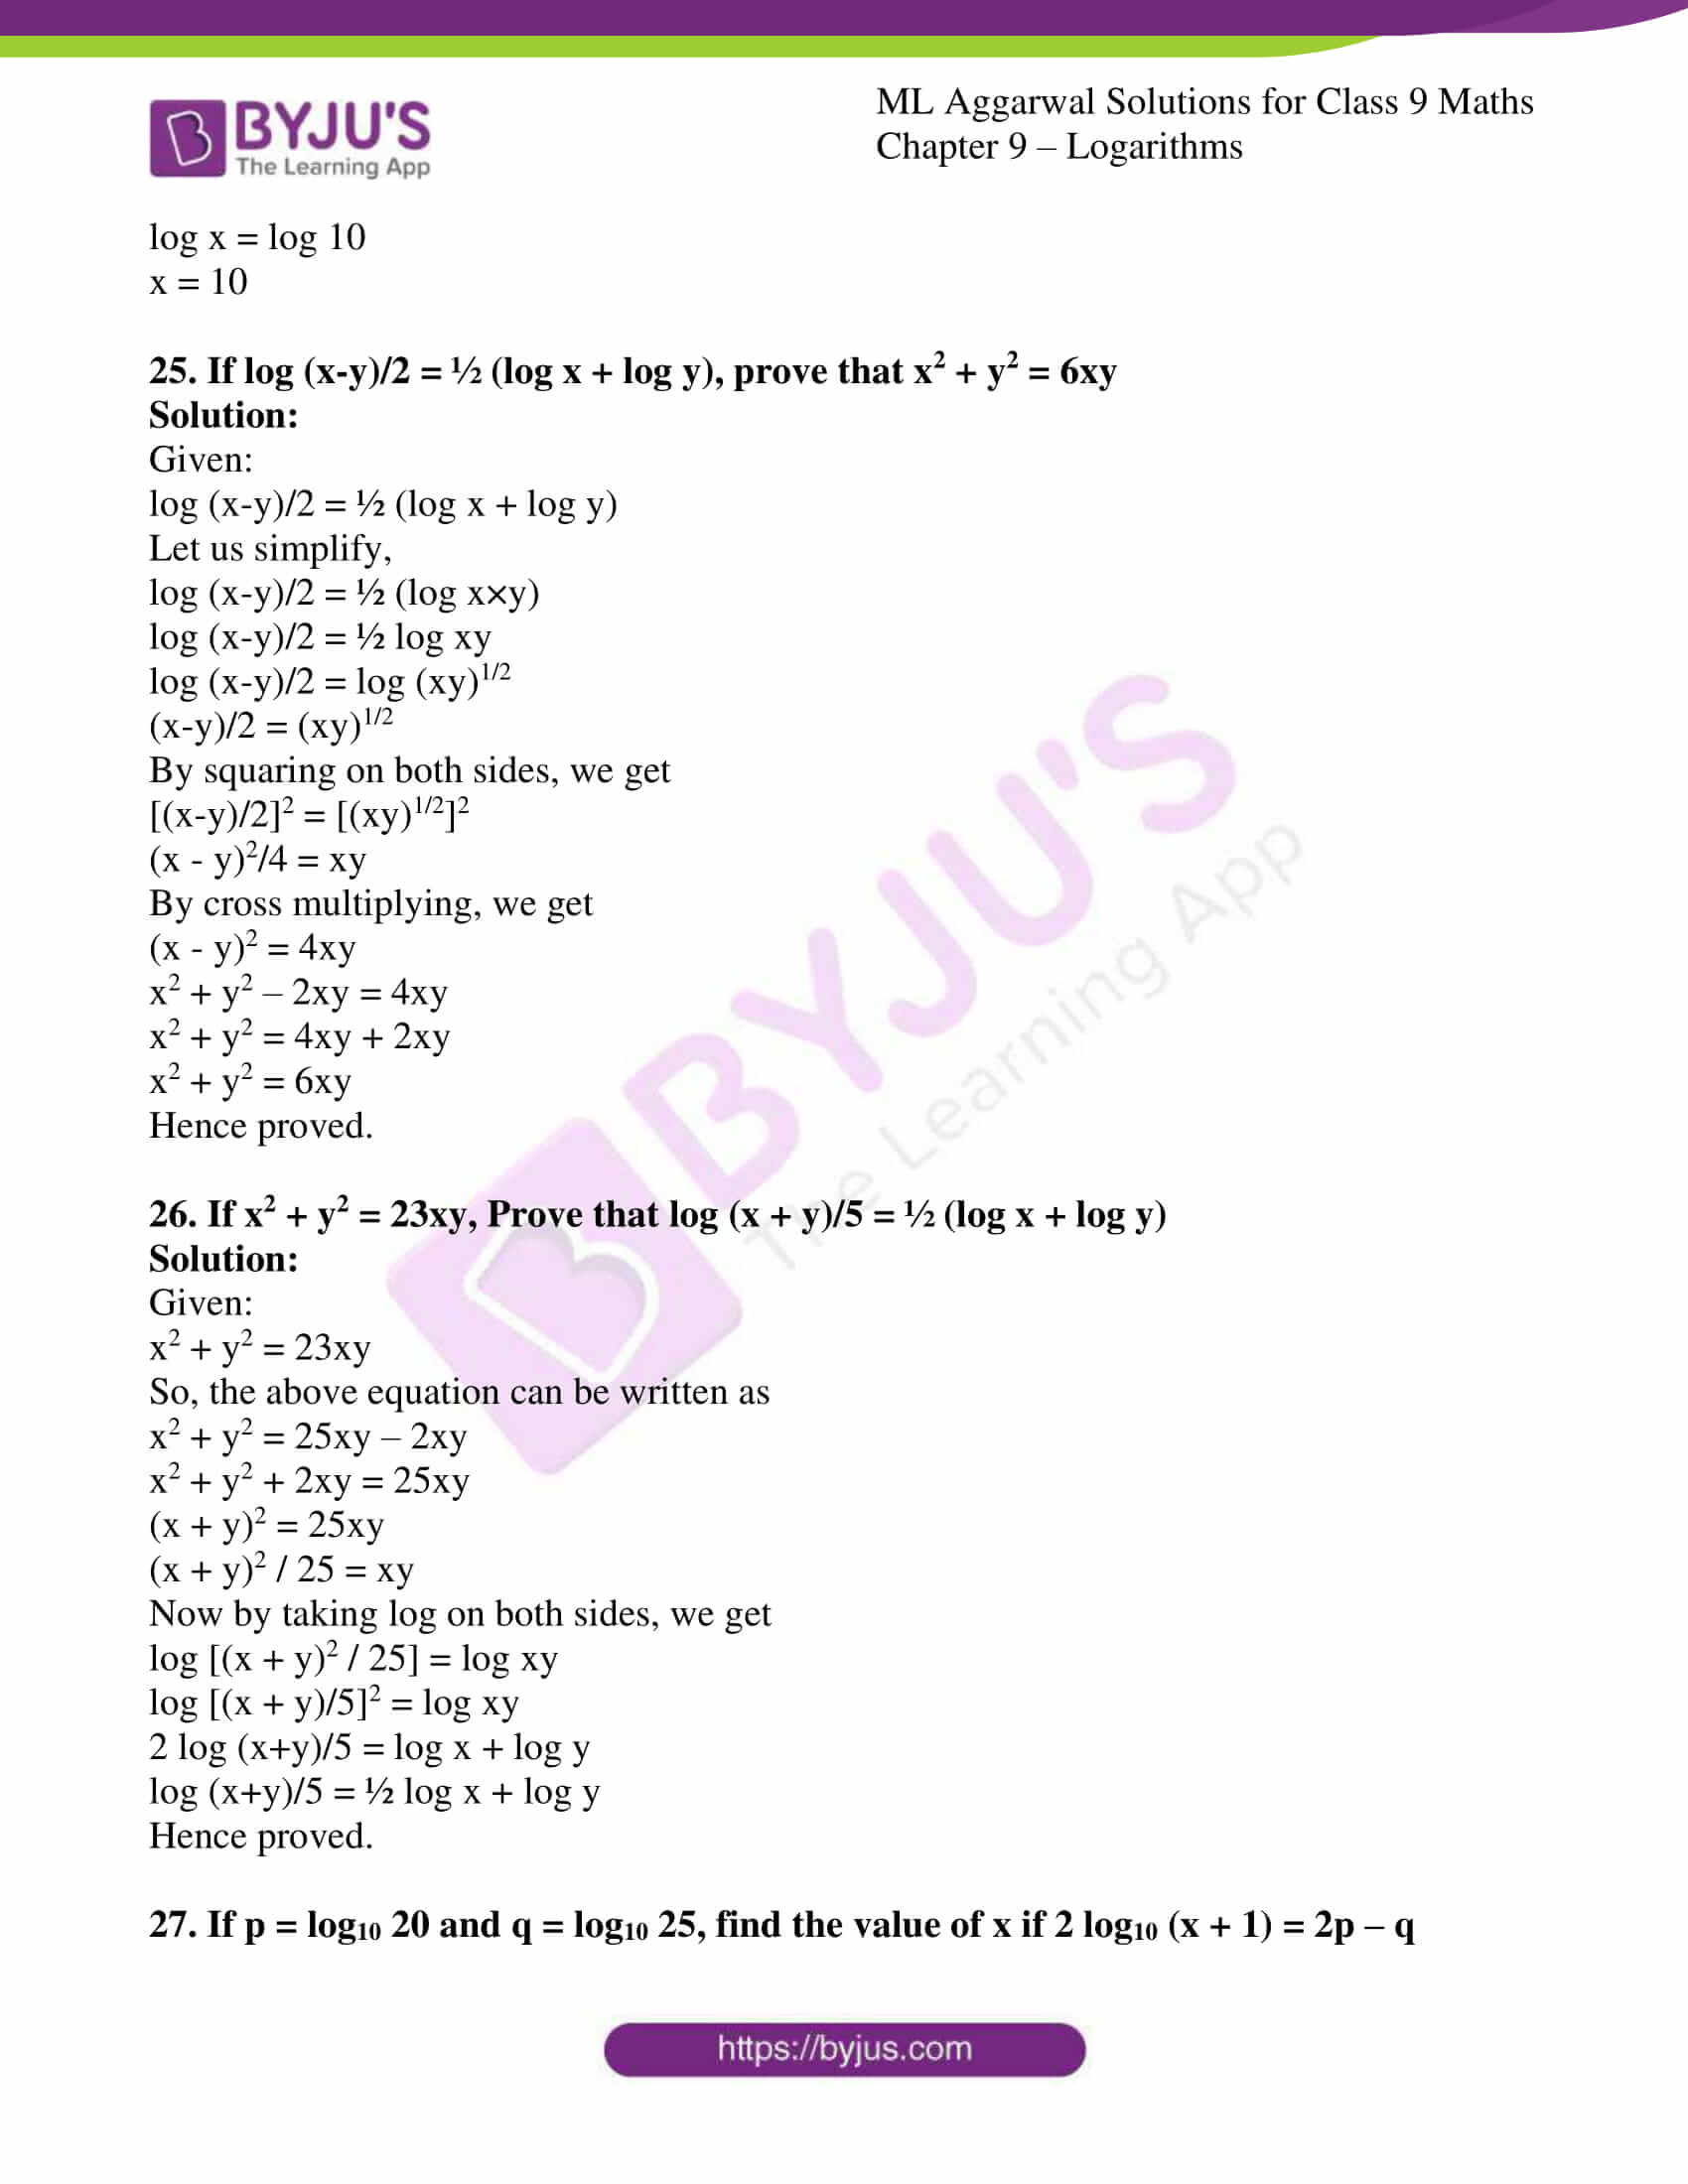 ml aggarwal solutions for class 9 maths chapter 9 30